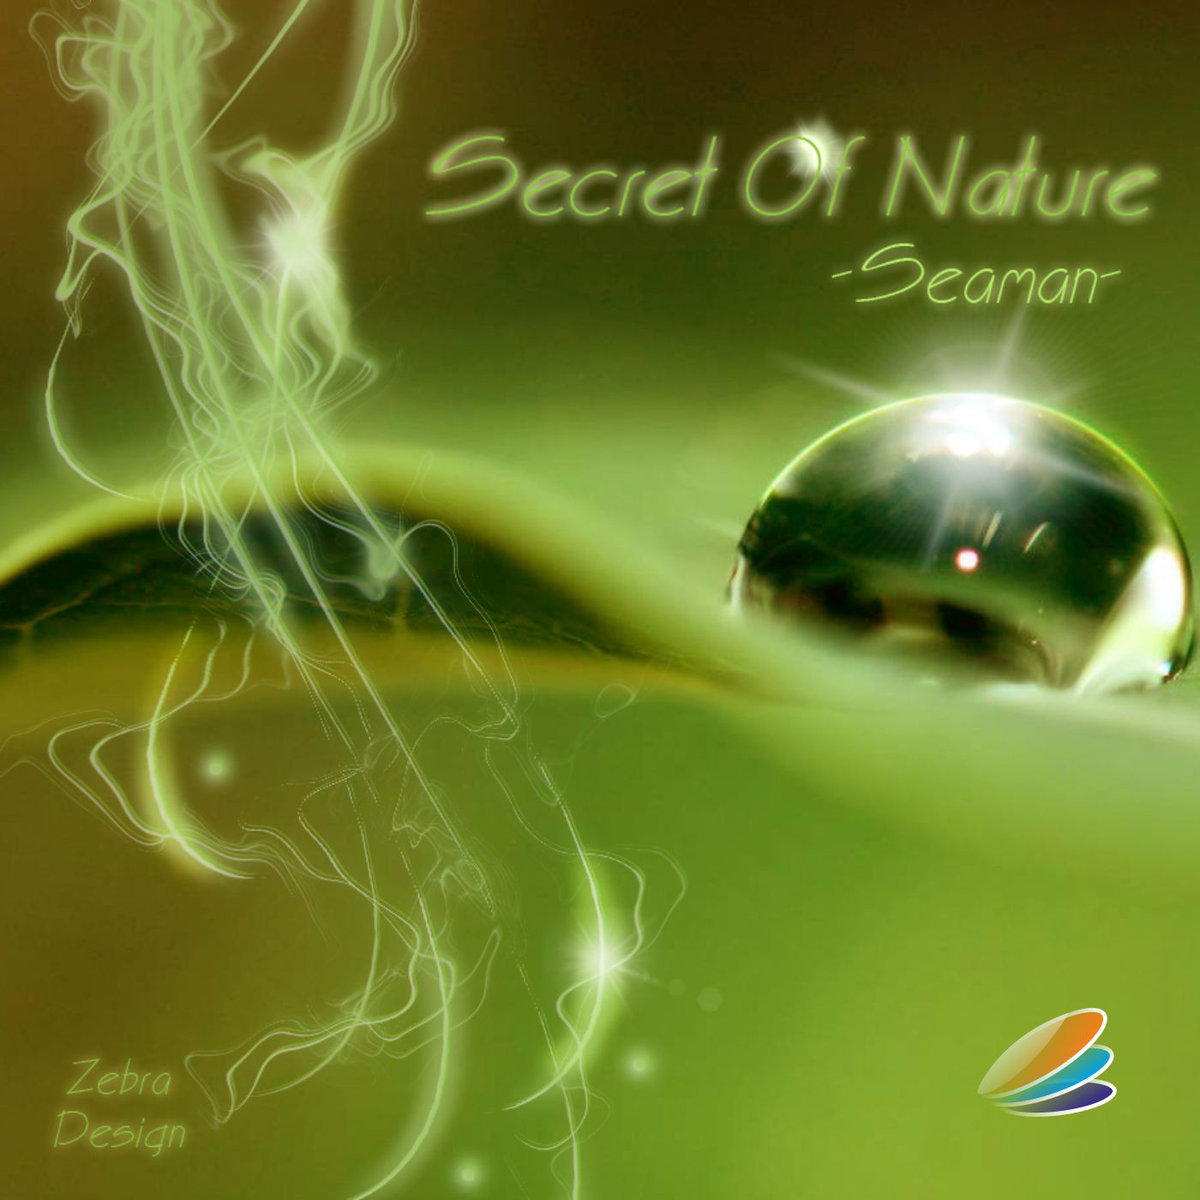 Seaman - Secret Of Nature